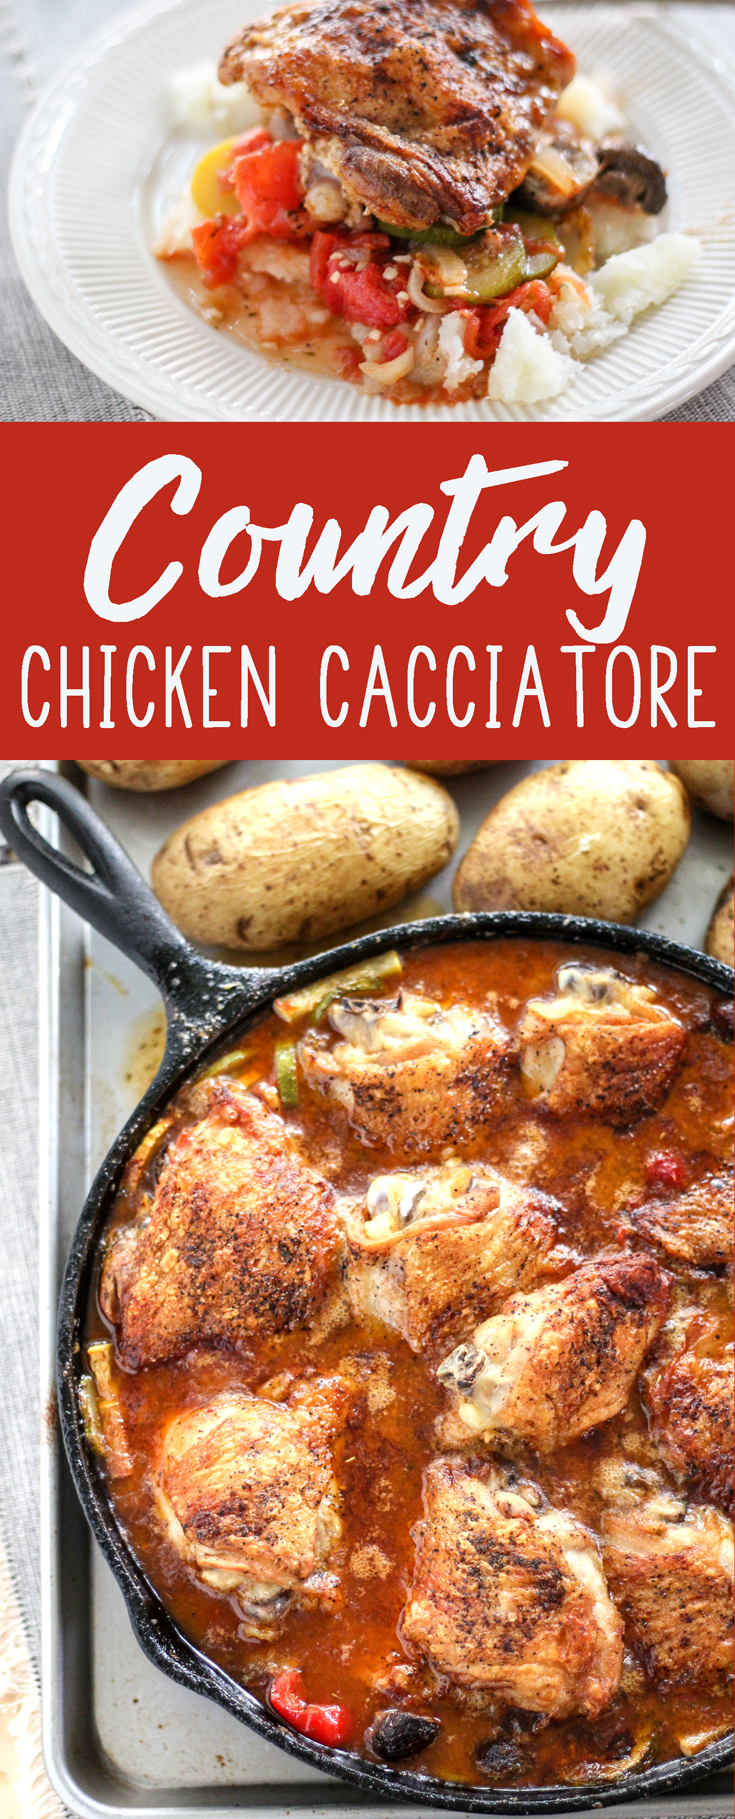 Golden brown chicken thighs are cooked until the skin is crispy, but tender and moist on the inside. Country garden vegetables like fresh zucchini and summer squash, tomatoes, and white wine create a flavorful stew that is amazing.  #chickencacciatorerecipe